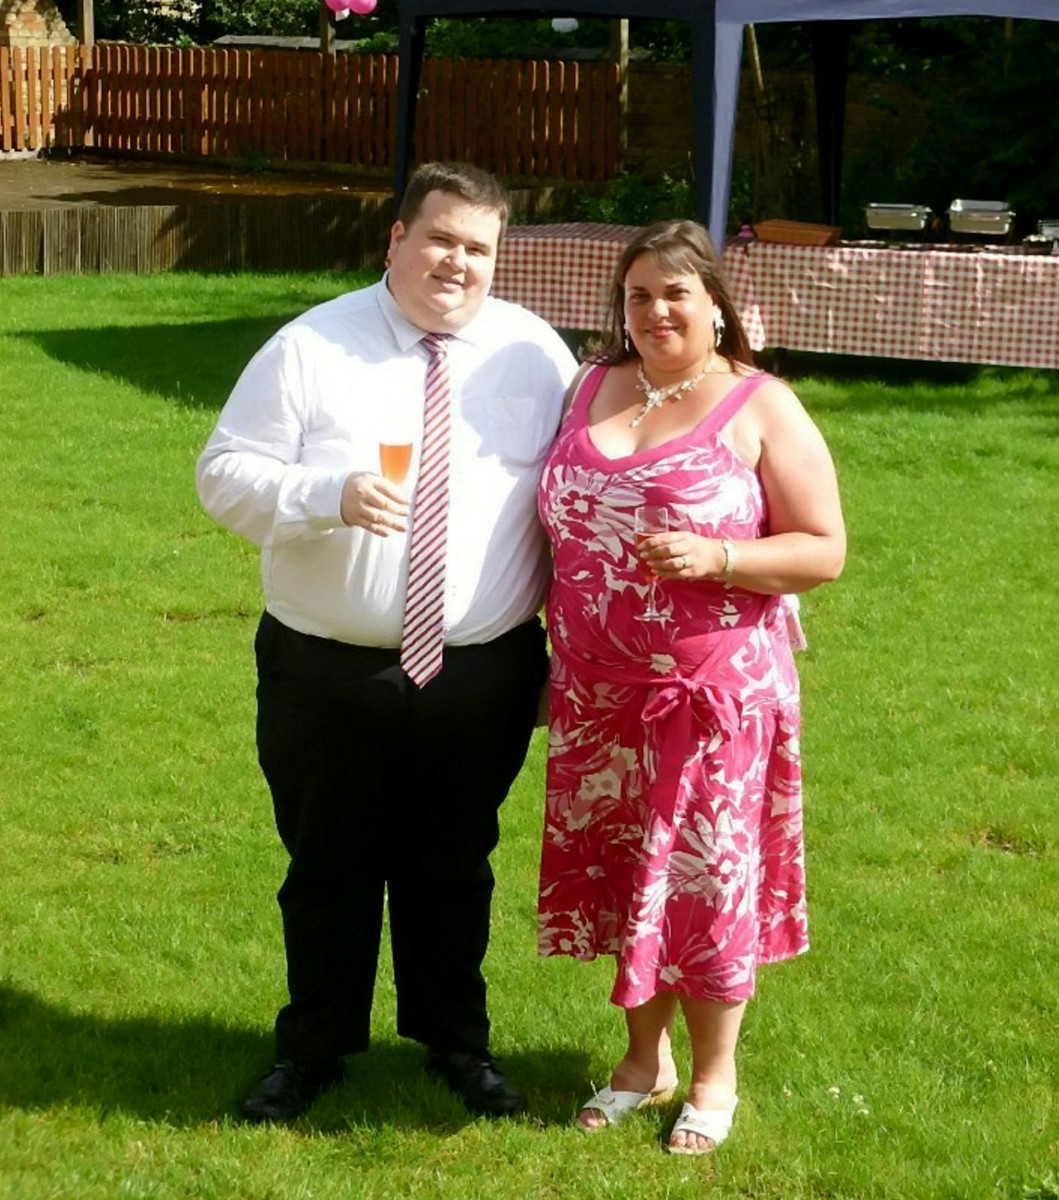 PRIDE AND GROOM – Husband-to-be sheds 11st in 18 months so he could look trim on his wedding day